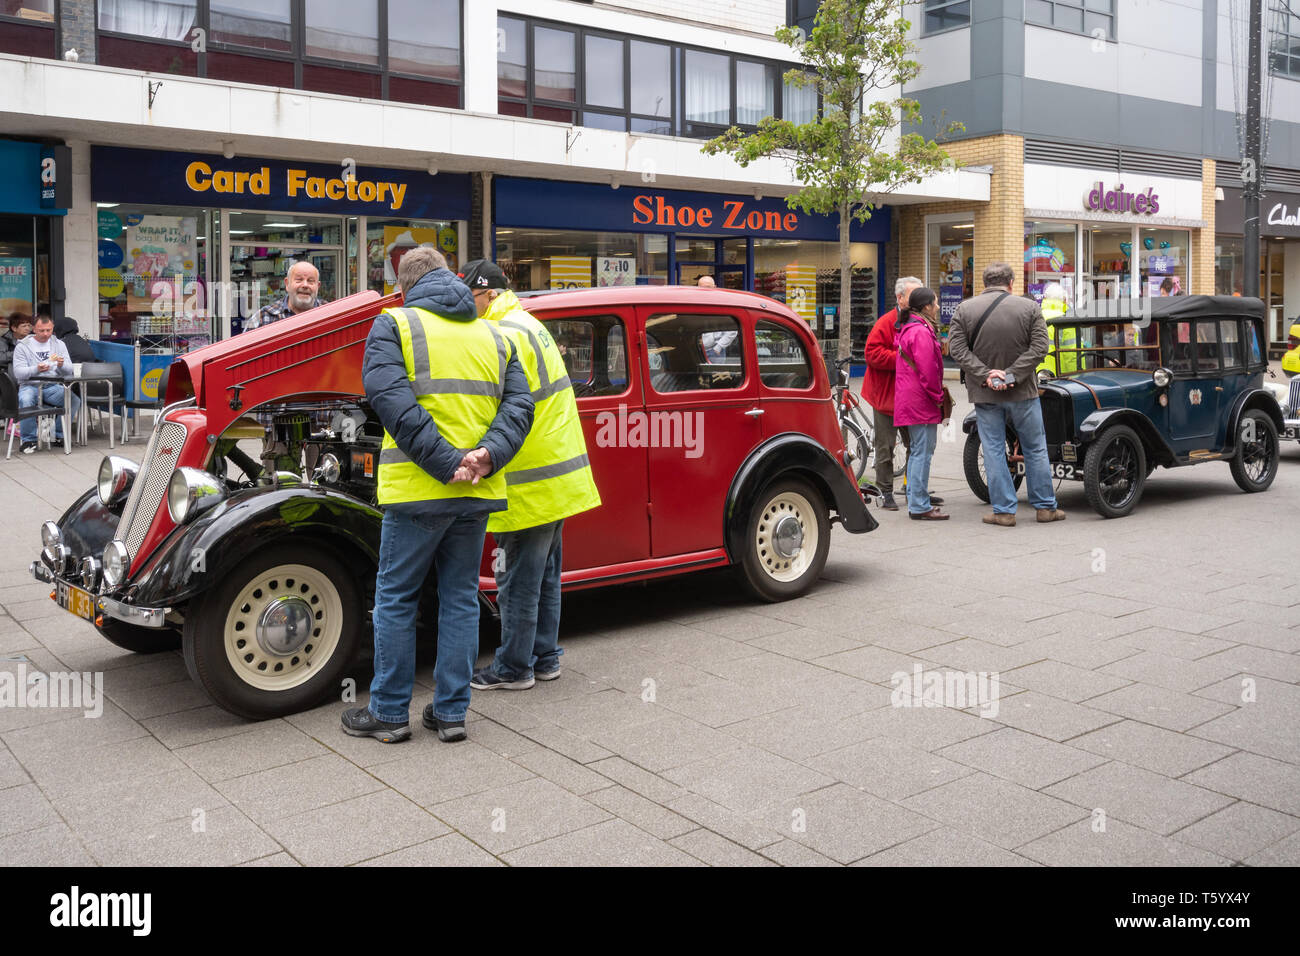 Farnborough Car Show, April 2019, classic motor vehicles on display in the town centre, Hampshire, UK Stock Photo